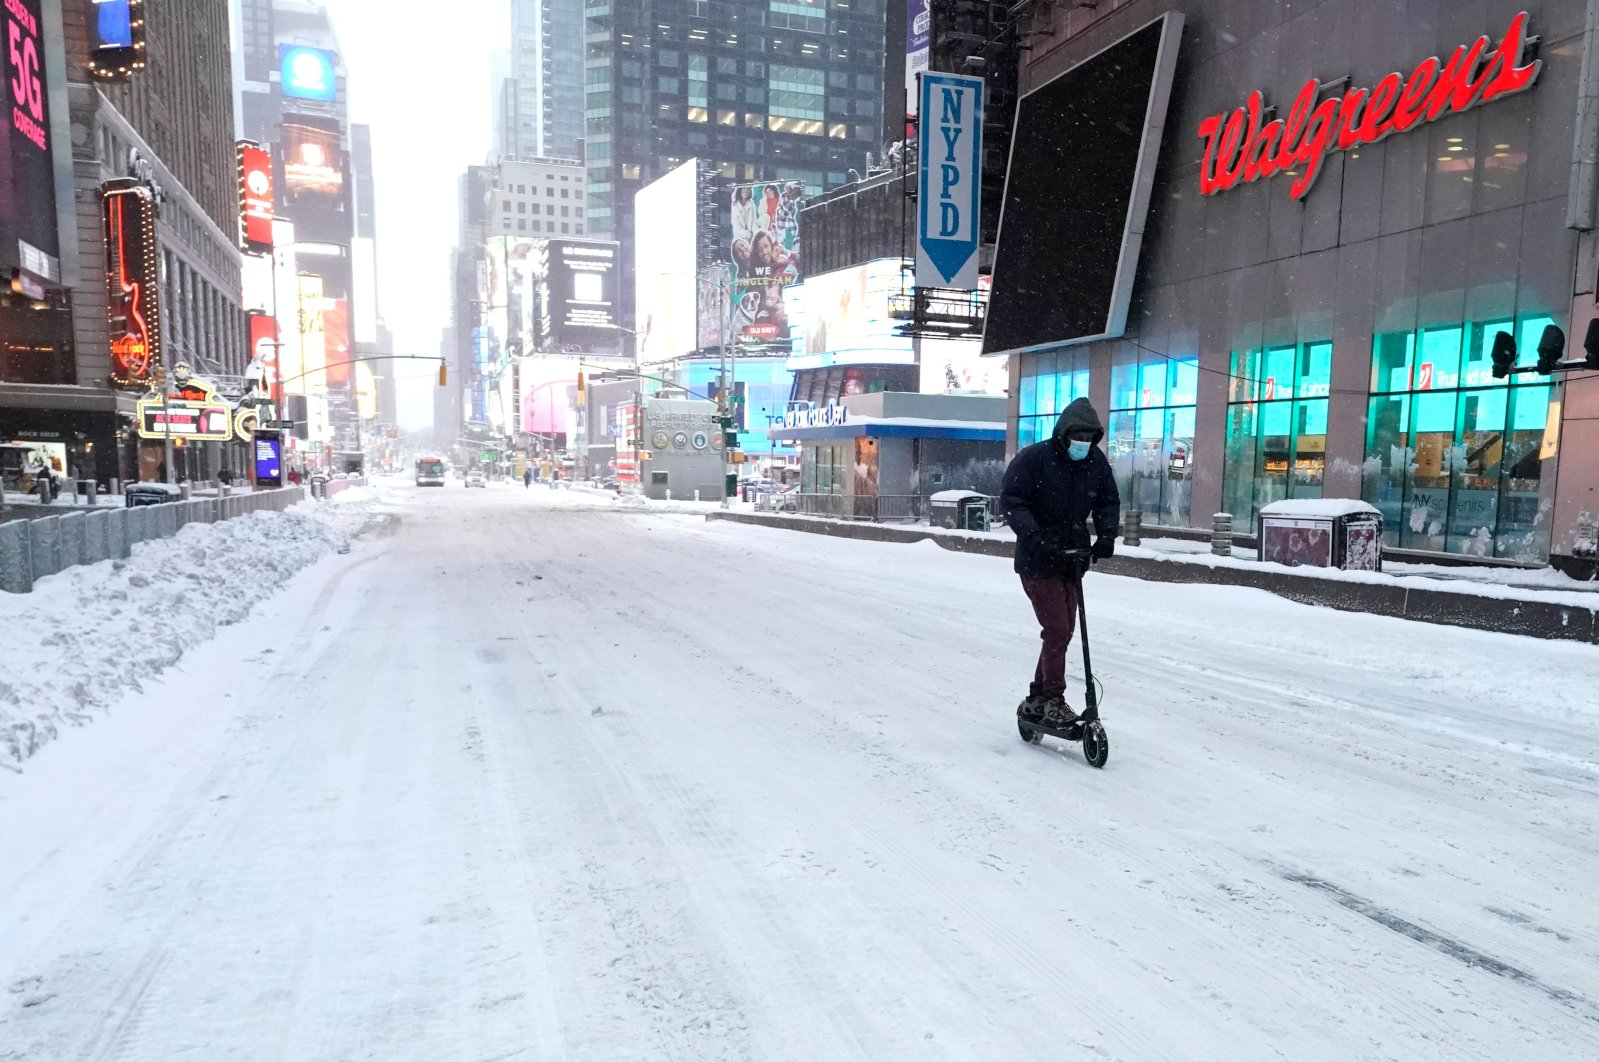 A man travels on a scooter in Times Square in the morning after a powerful winter storm hit America's northeastern states, New York City, U.S., Dec. 17, 2020. (AFP Photo)